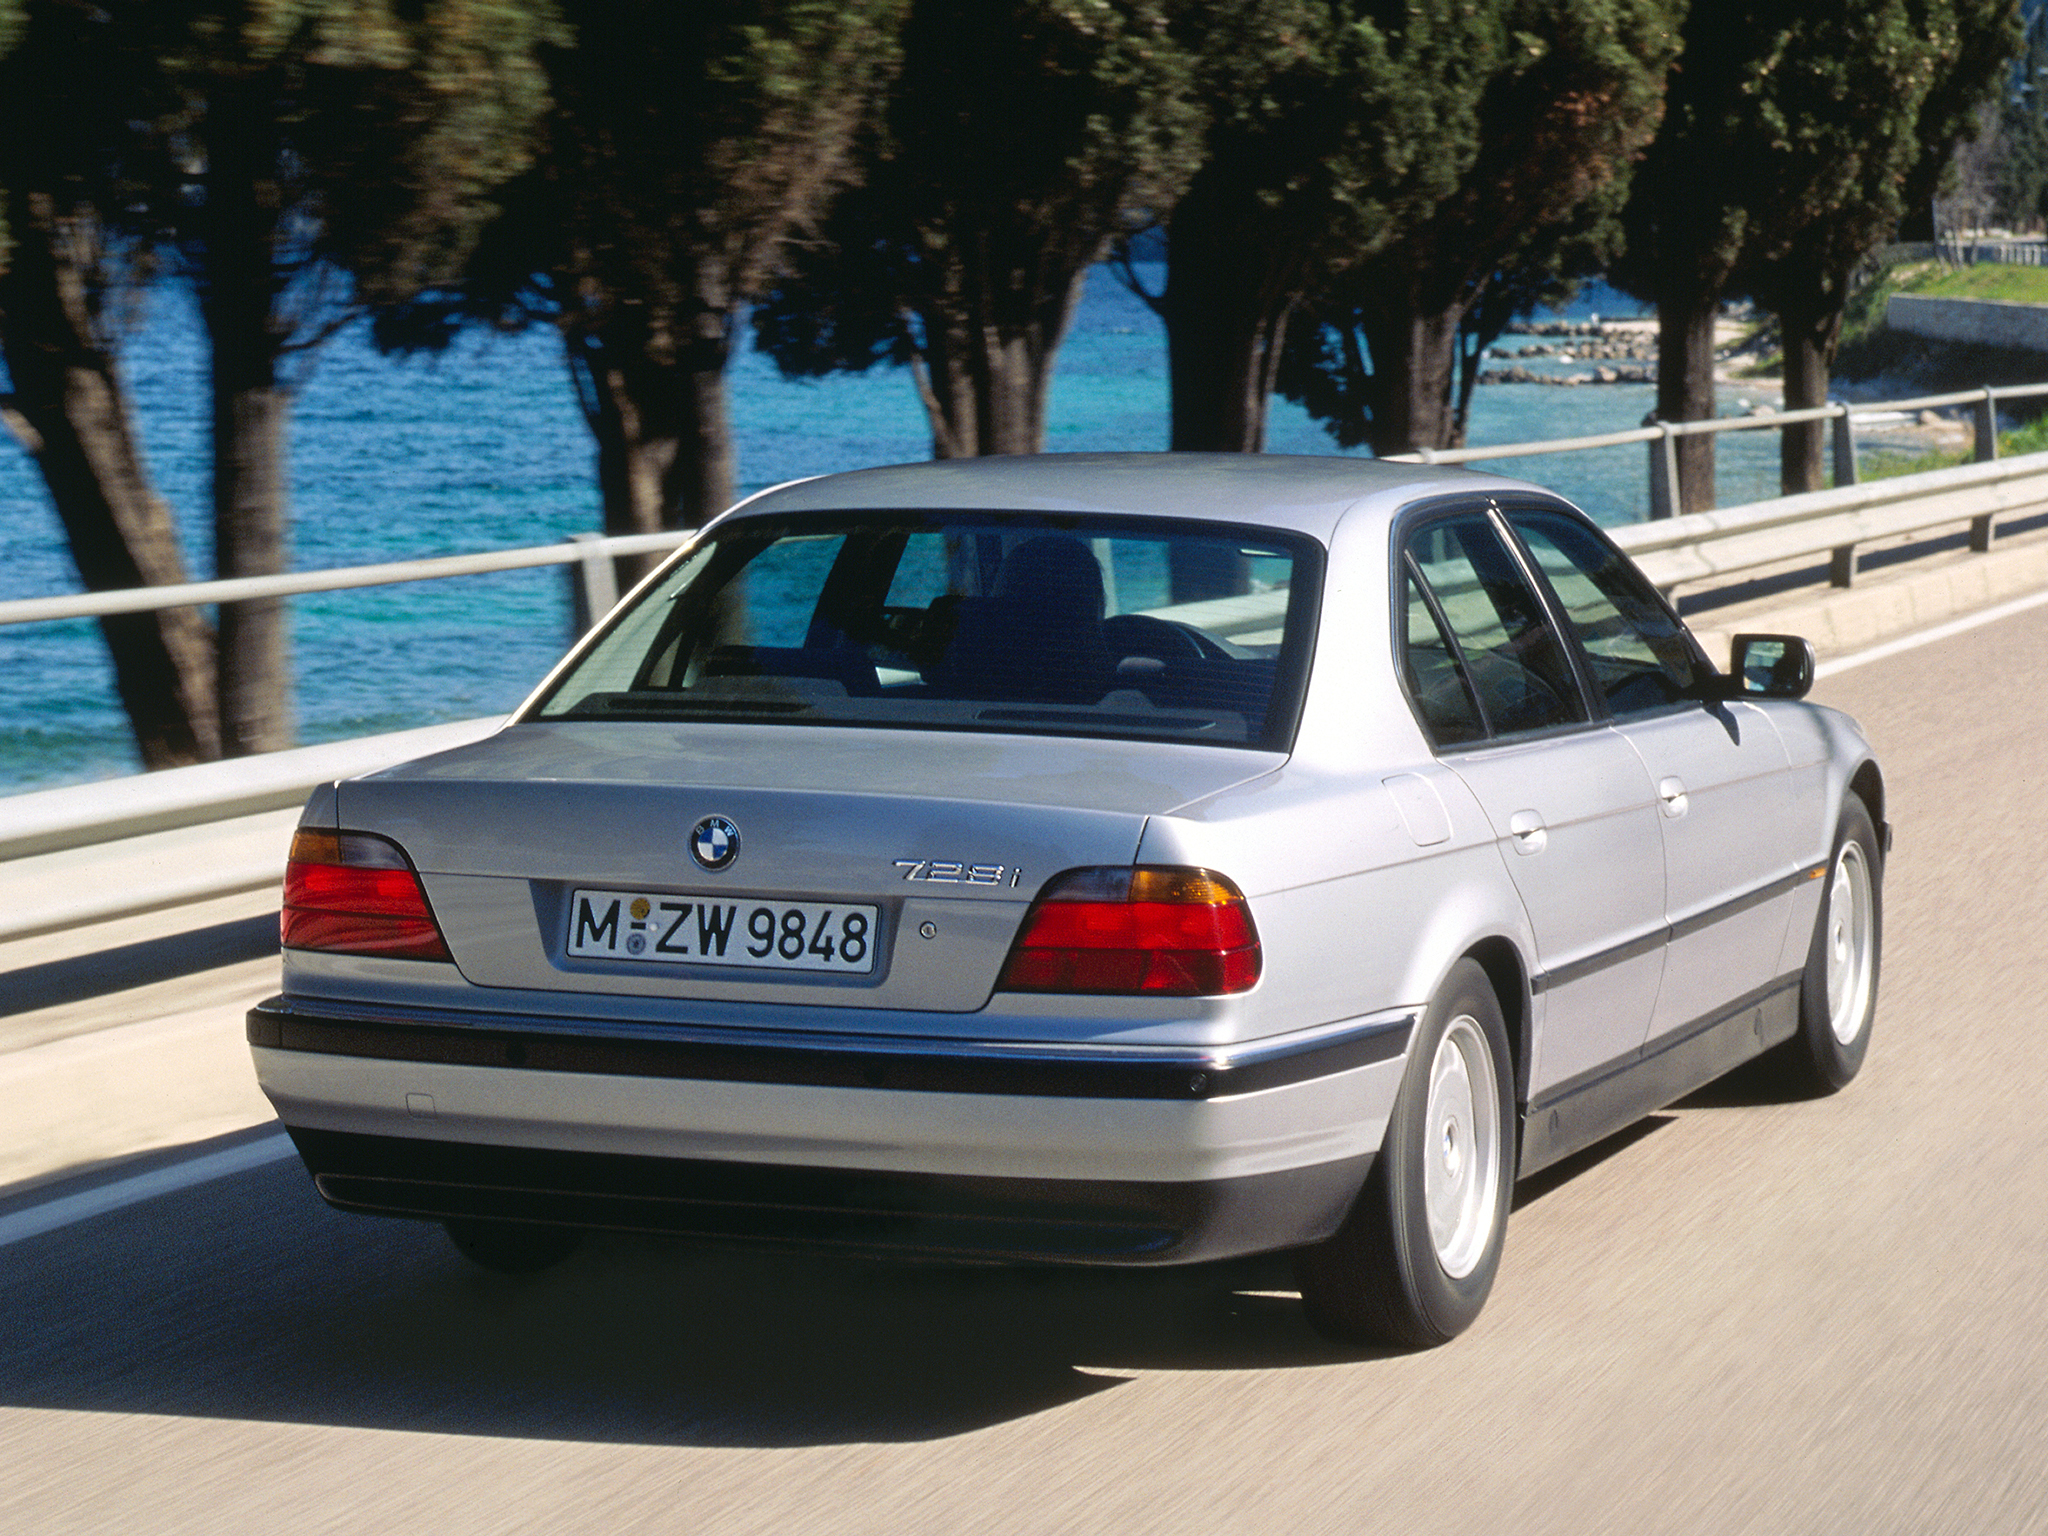 BMW 7 series 728i 1996 photo - 4